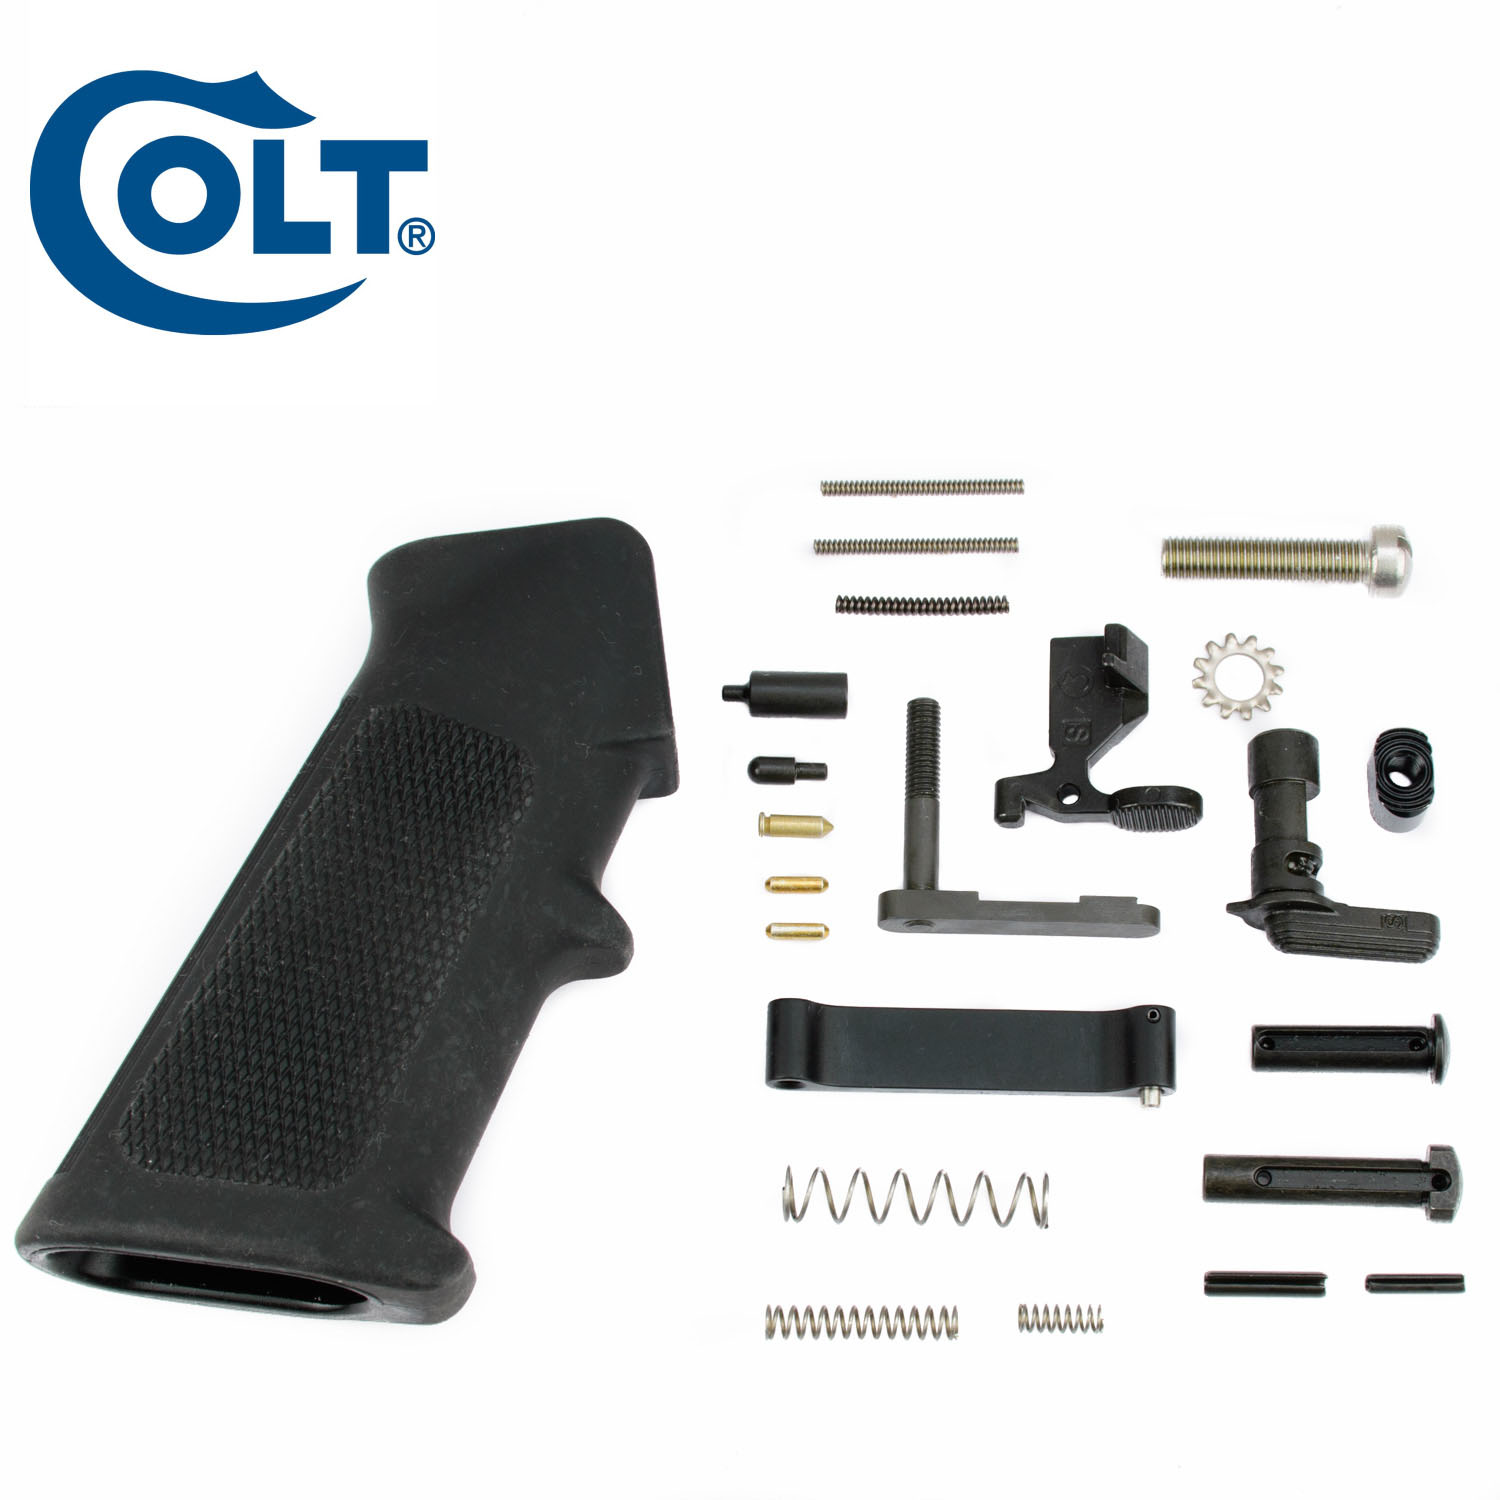 Colt Ar 15 Lower Receiver Parts Kit W O Fire Control Mgw Kimber 1911 Diagram Search